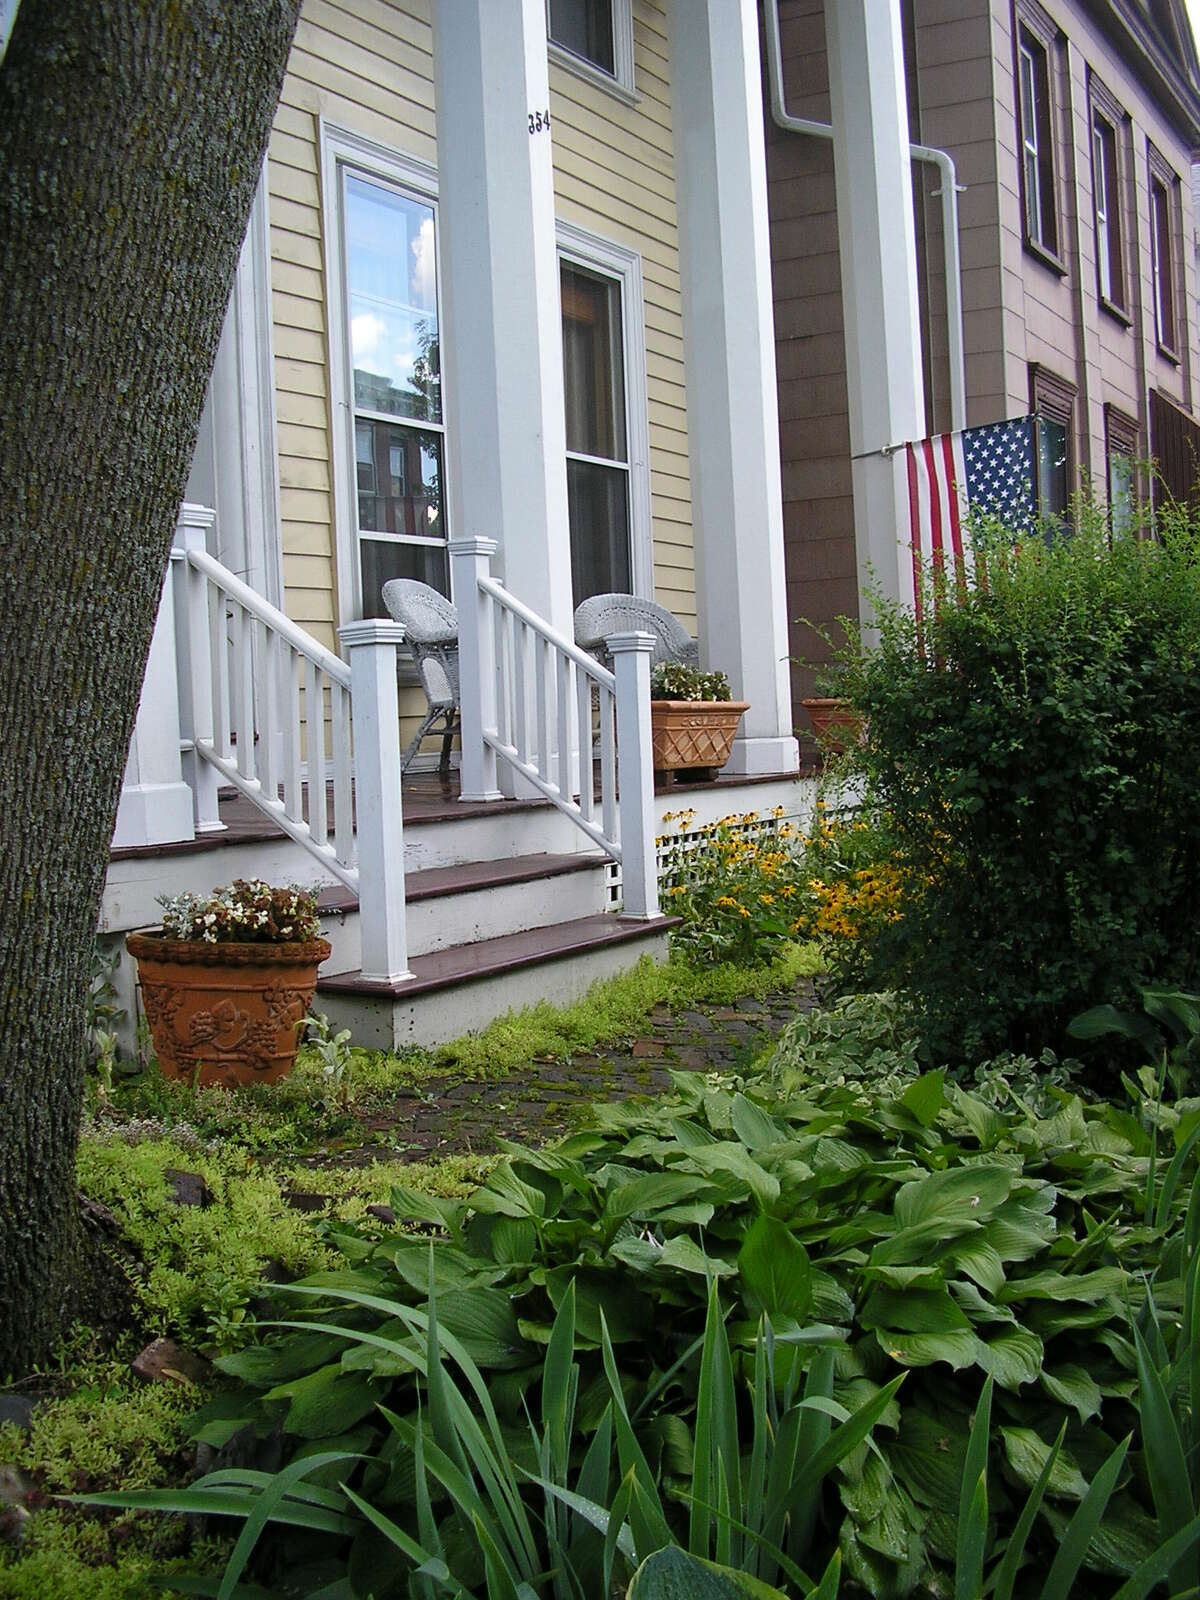 House of the Week: 354 Third St.,Troy | Realtor: For sale by owner | Discuss: Talk about this house